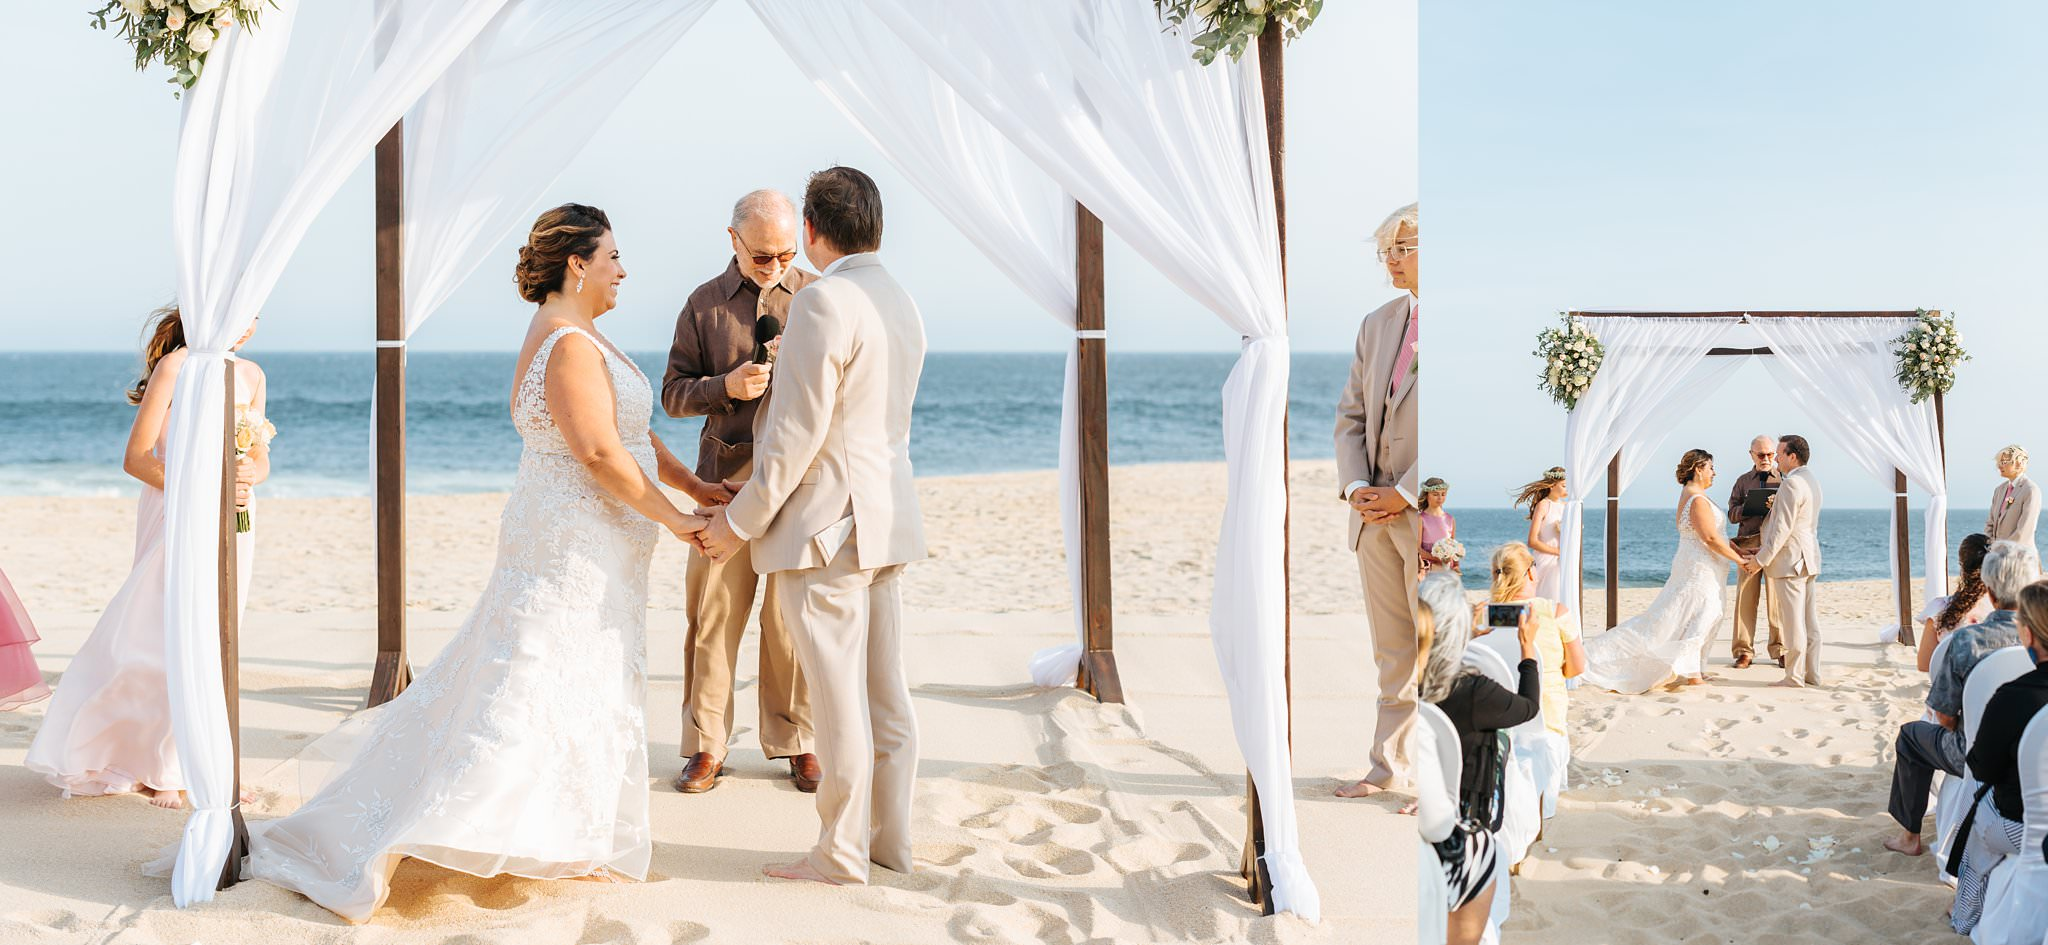 Saying vows on the beaches of Mexico - Cabo Beach Wedding - https://brittneyhannonphotography.com